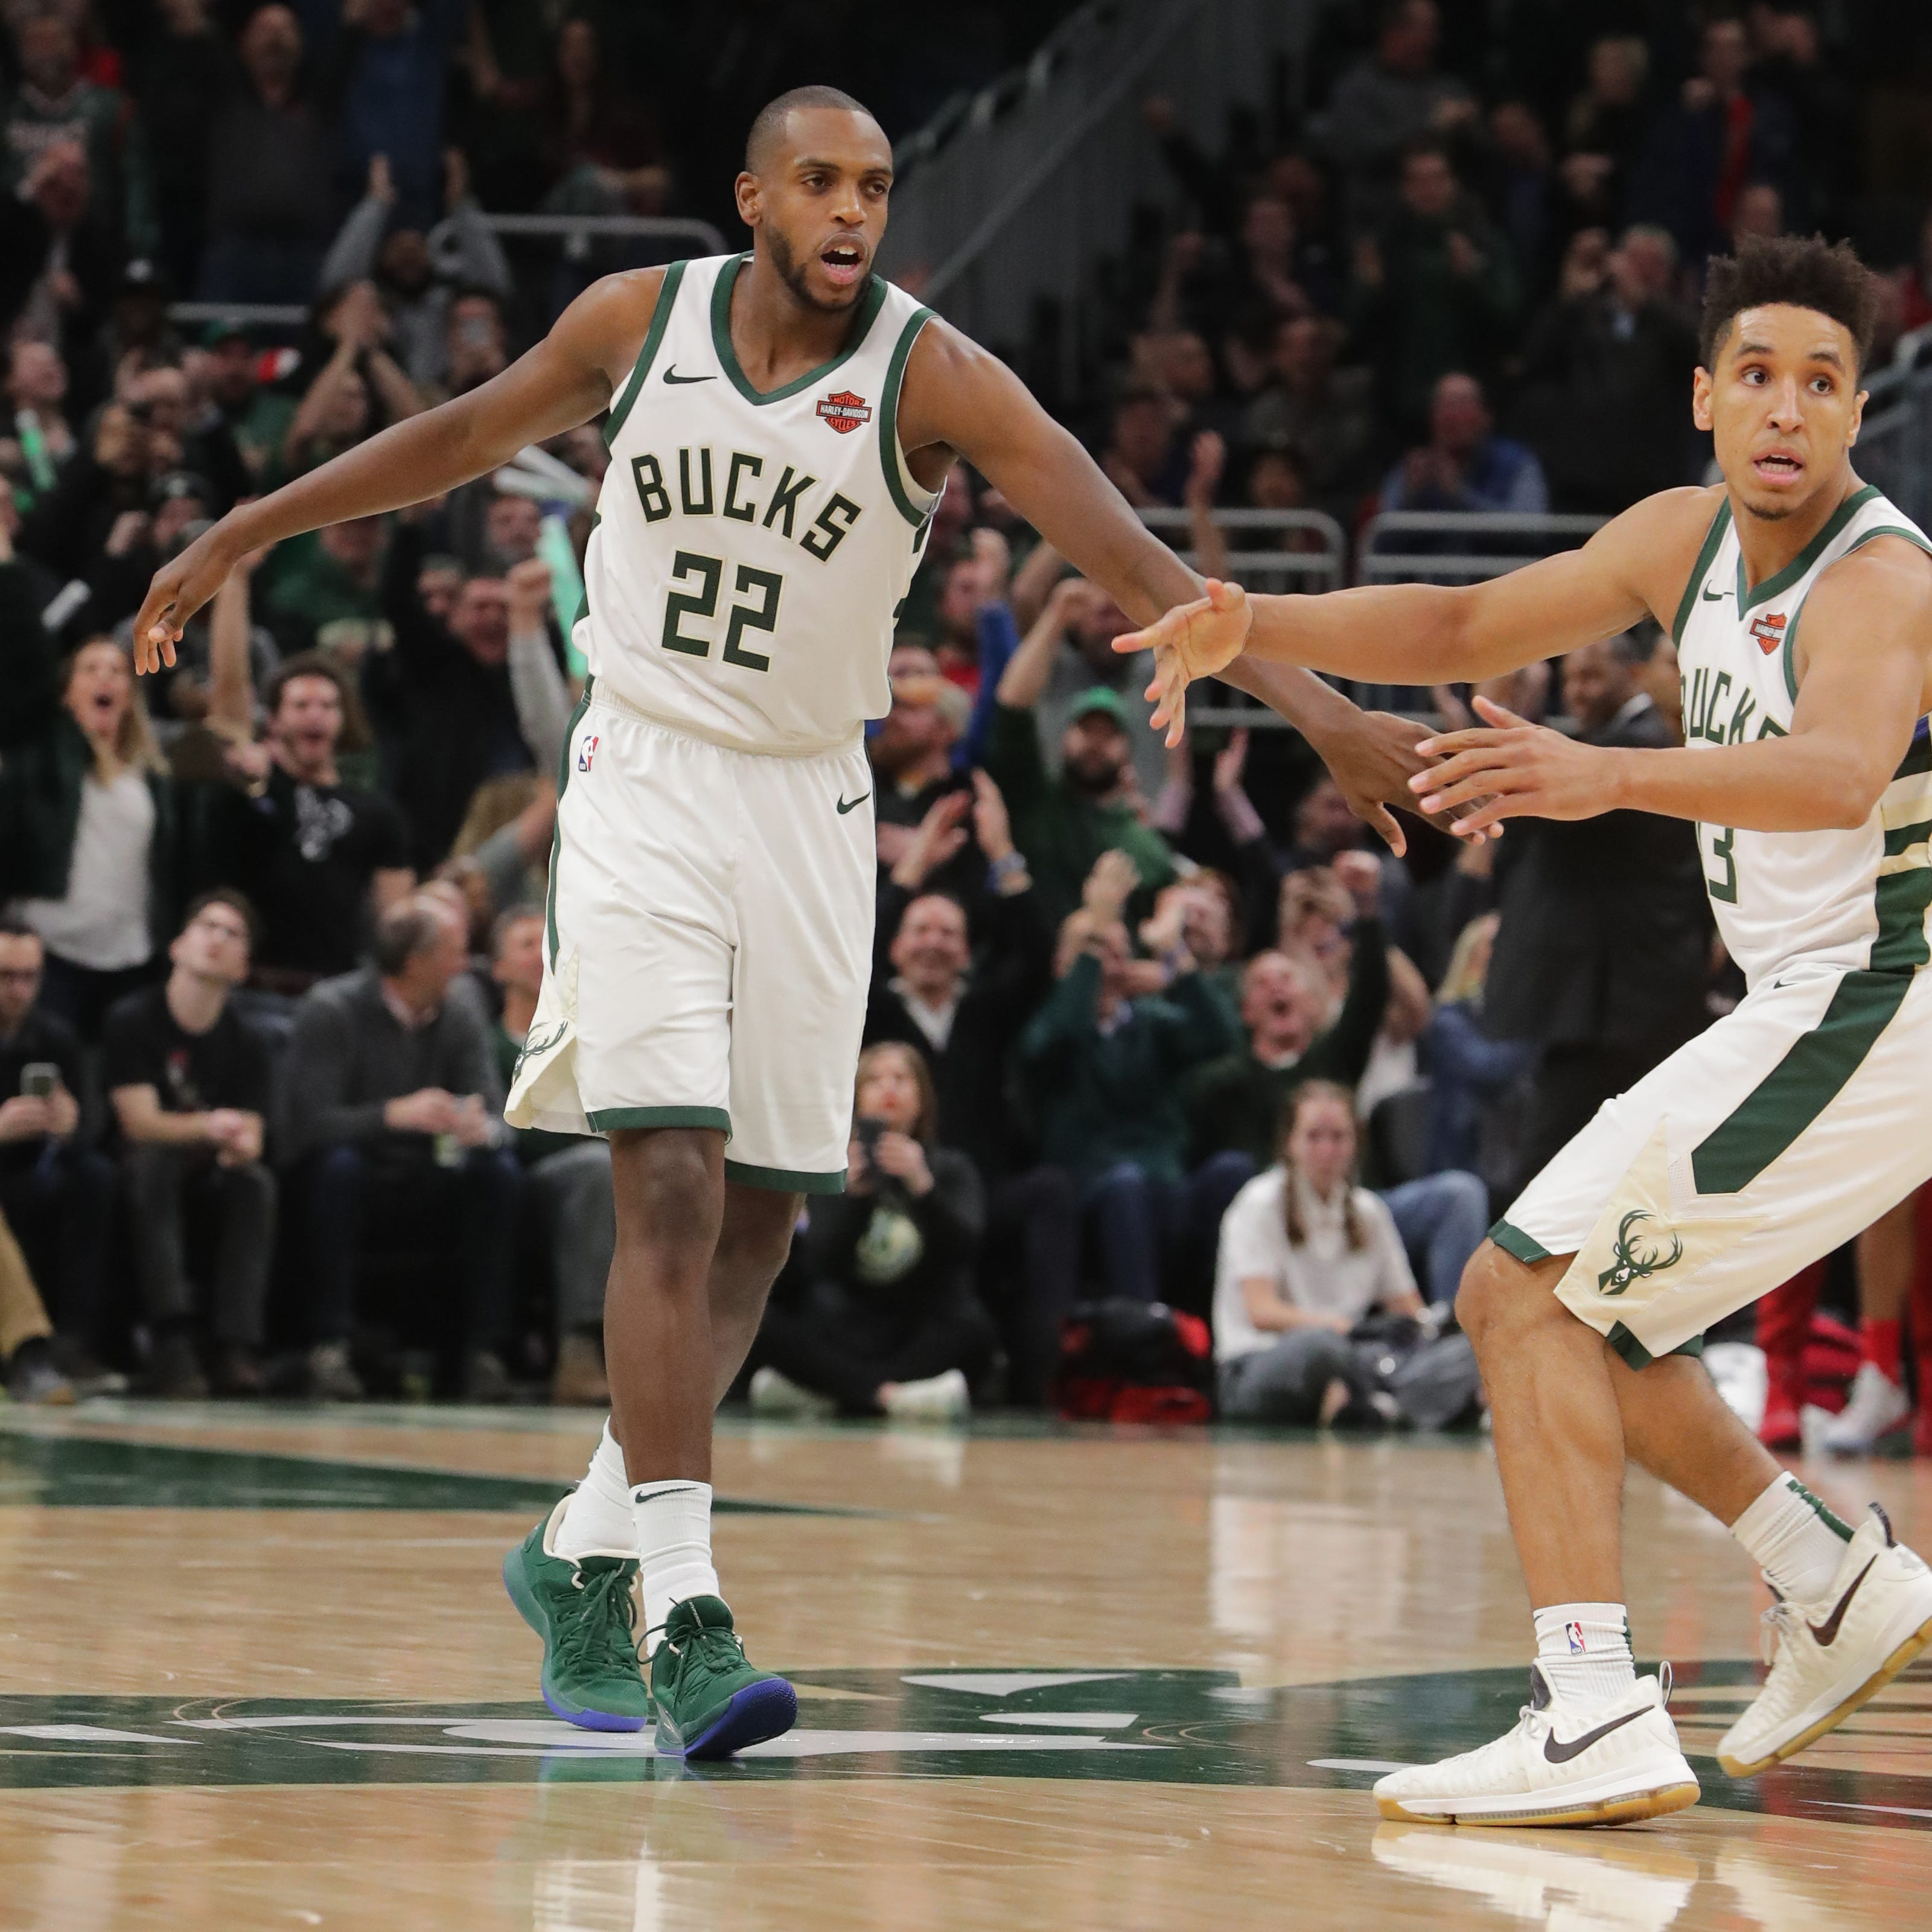 Injuries force Khris Middleton and Malcolm Brogdon to the bench vs. the Cavaliers